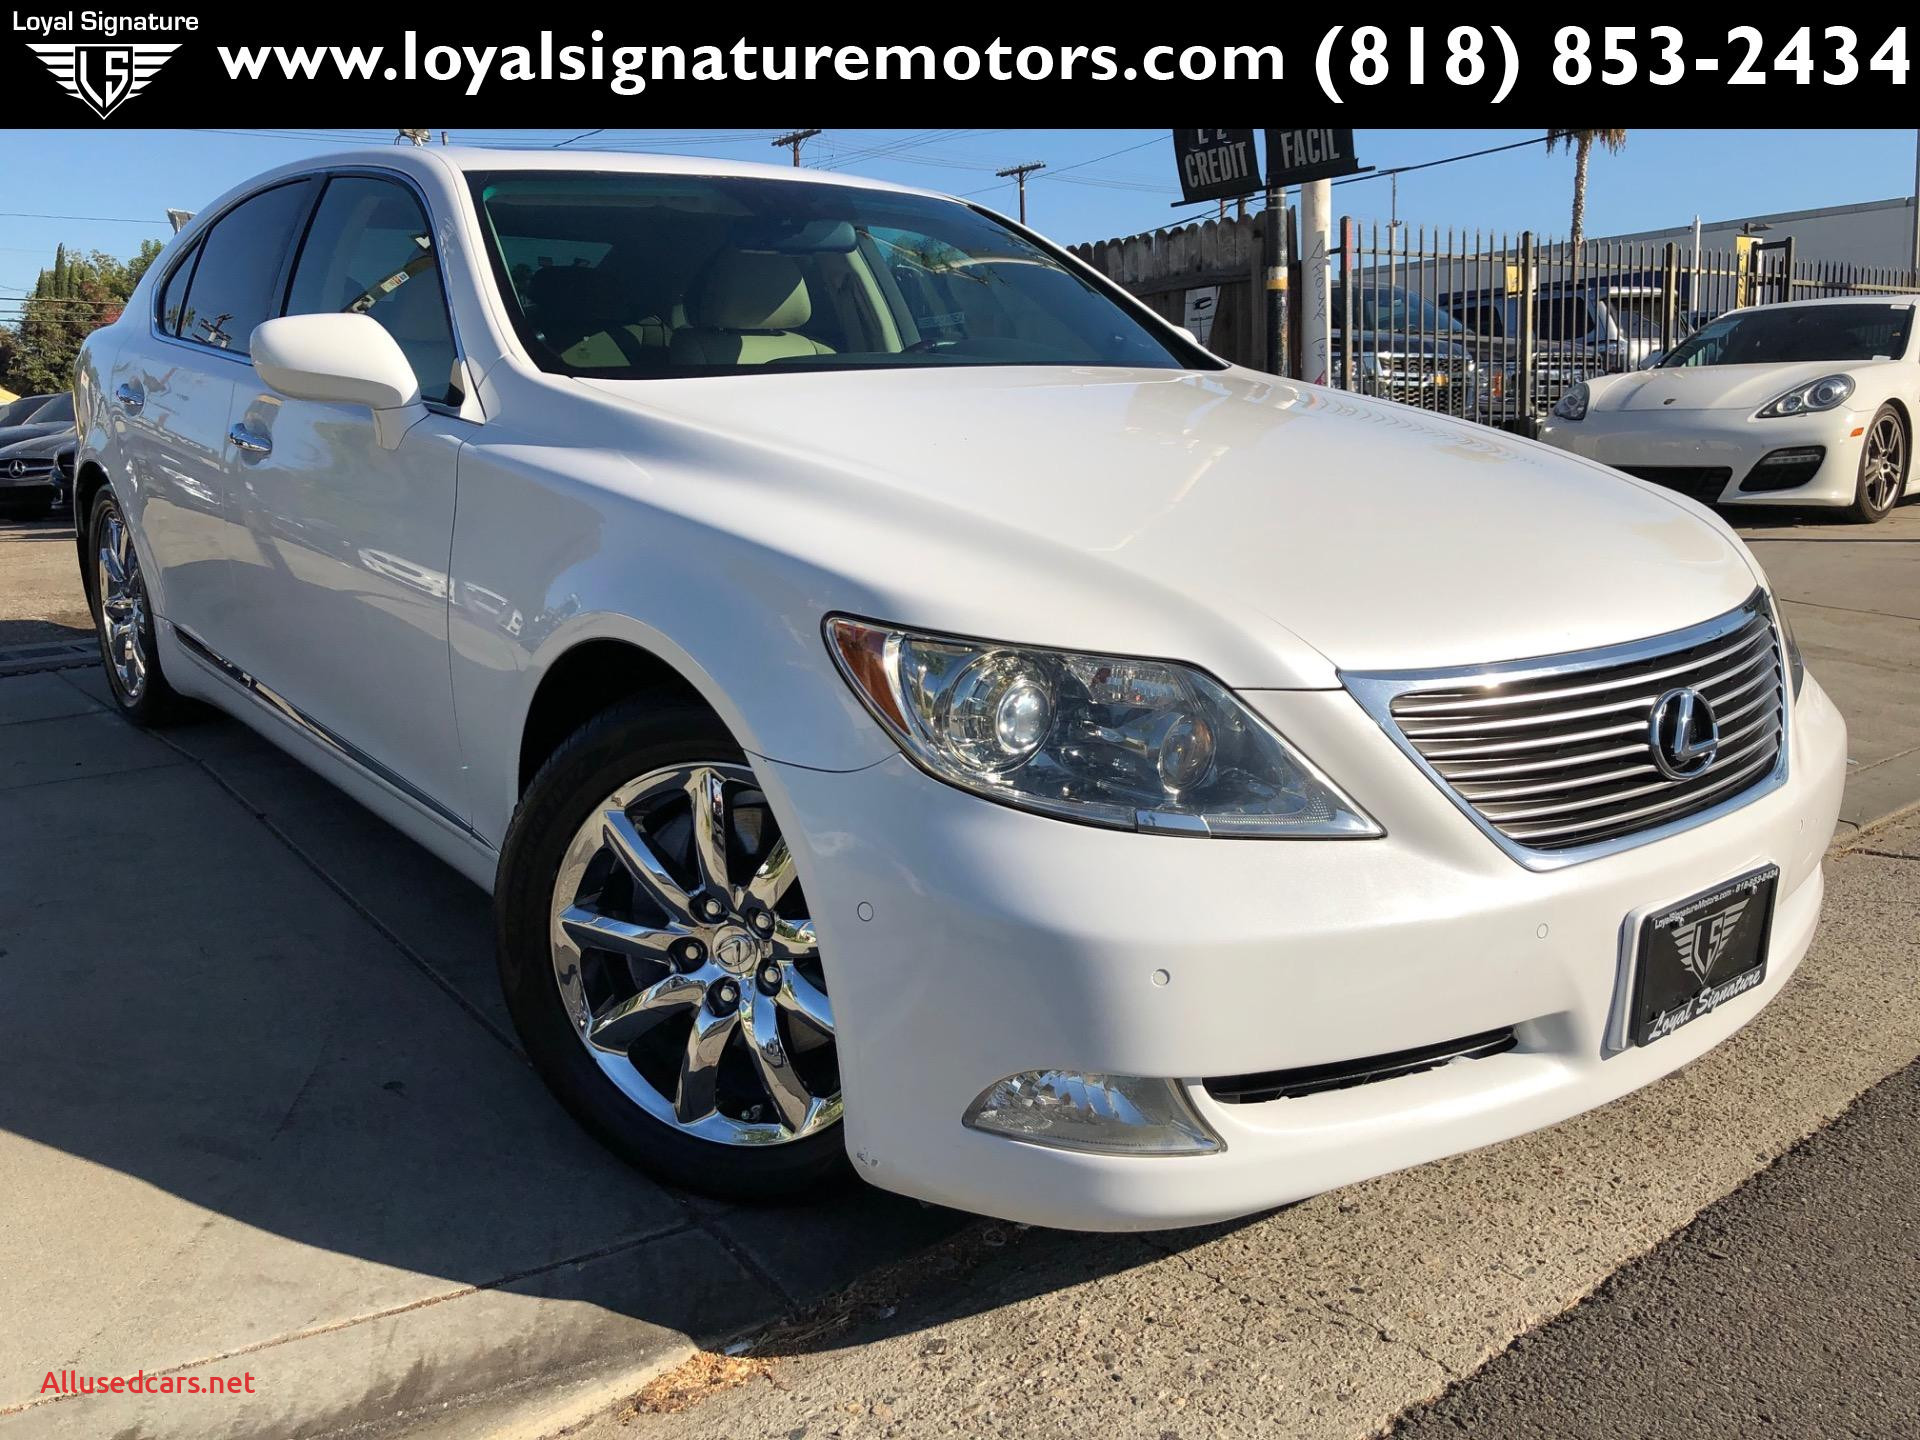 Lexus Ls 460 for Sale Best Of Used 2007 Lexus Ls 460 for Sale $11 995